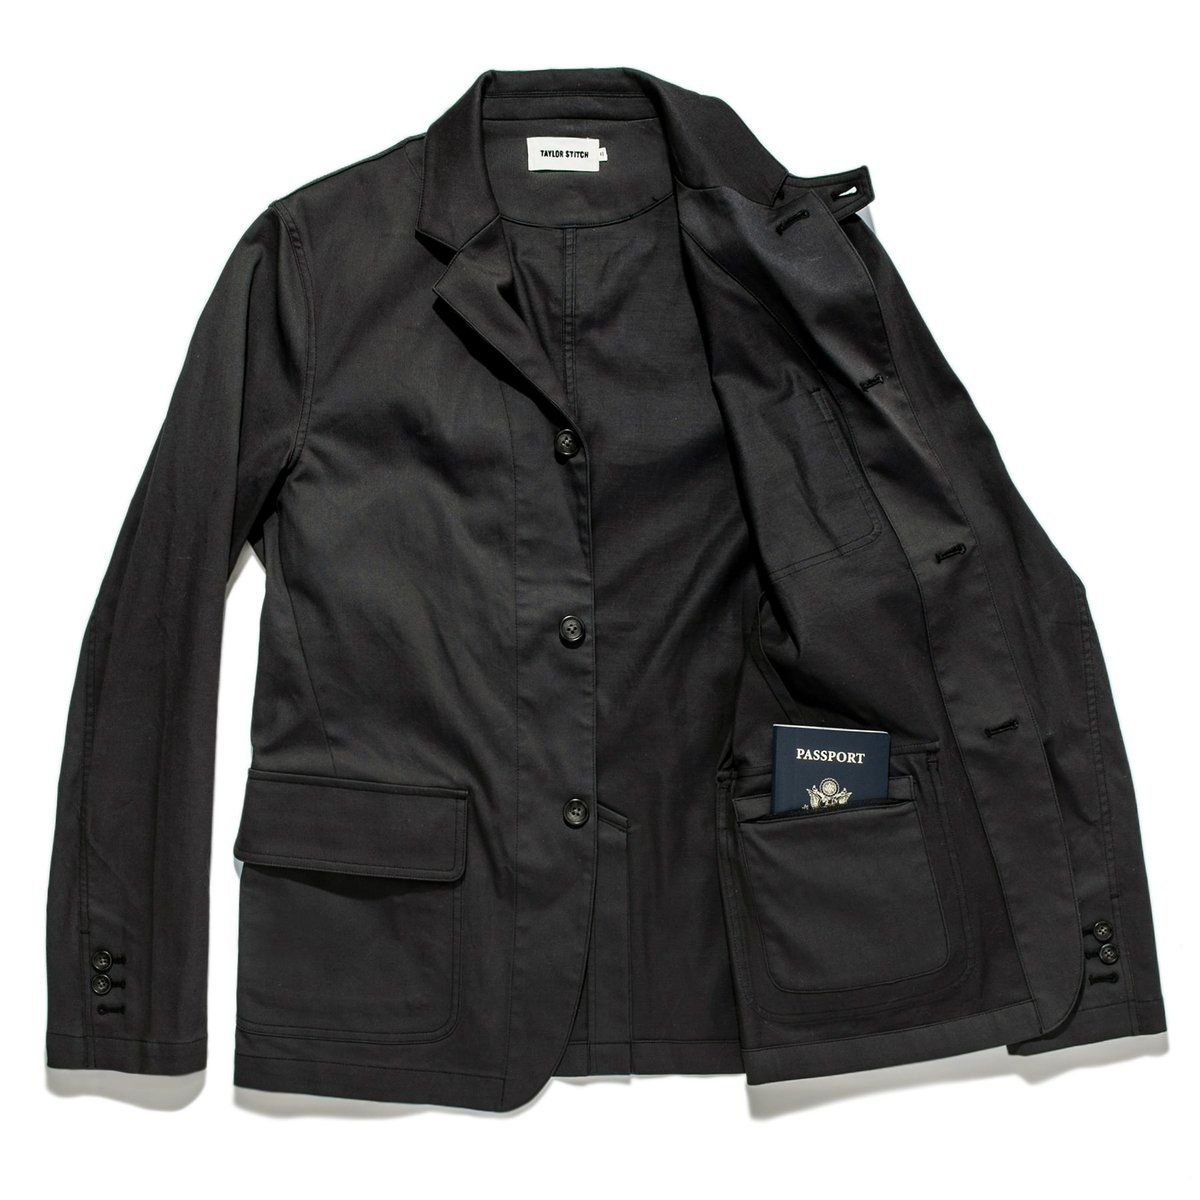 The Gibson Jacket In Charcoal Jackets Men Fashion Cool Jackets For Men Mens Jackets Fall [ 1200 x 1200 Pixel ]